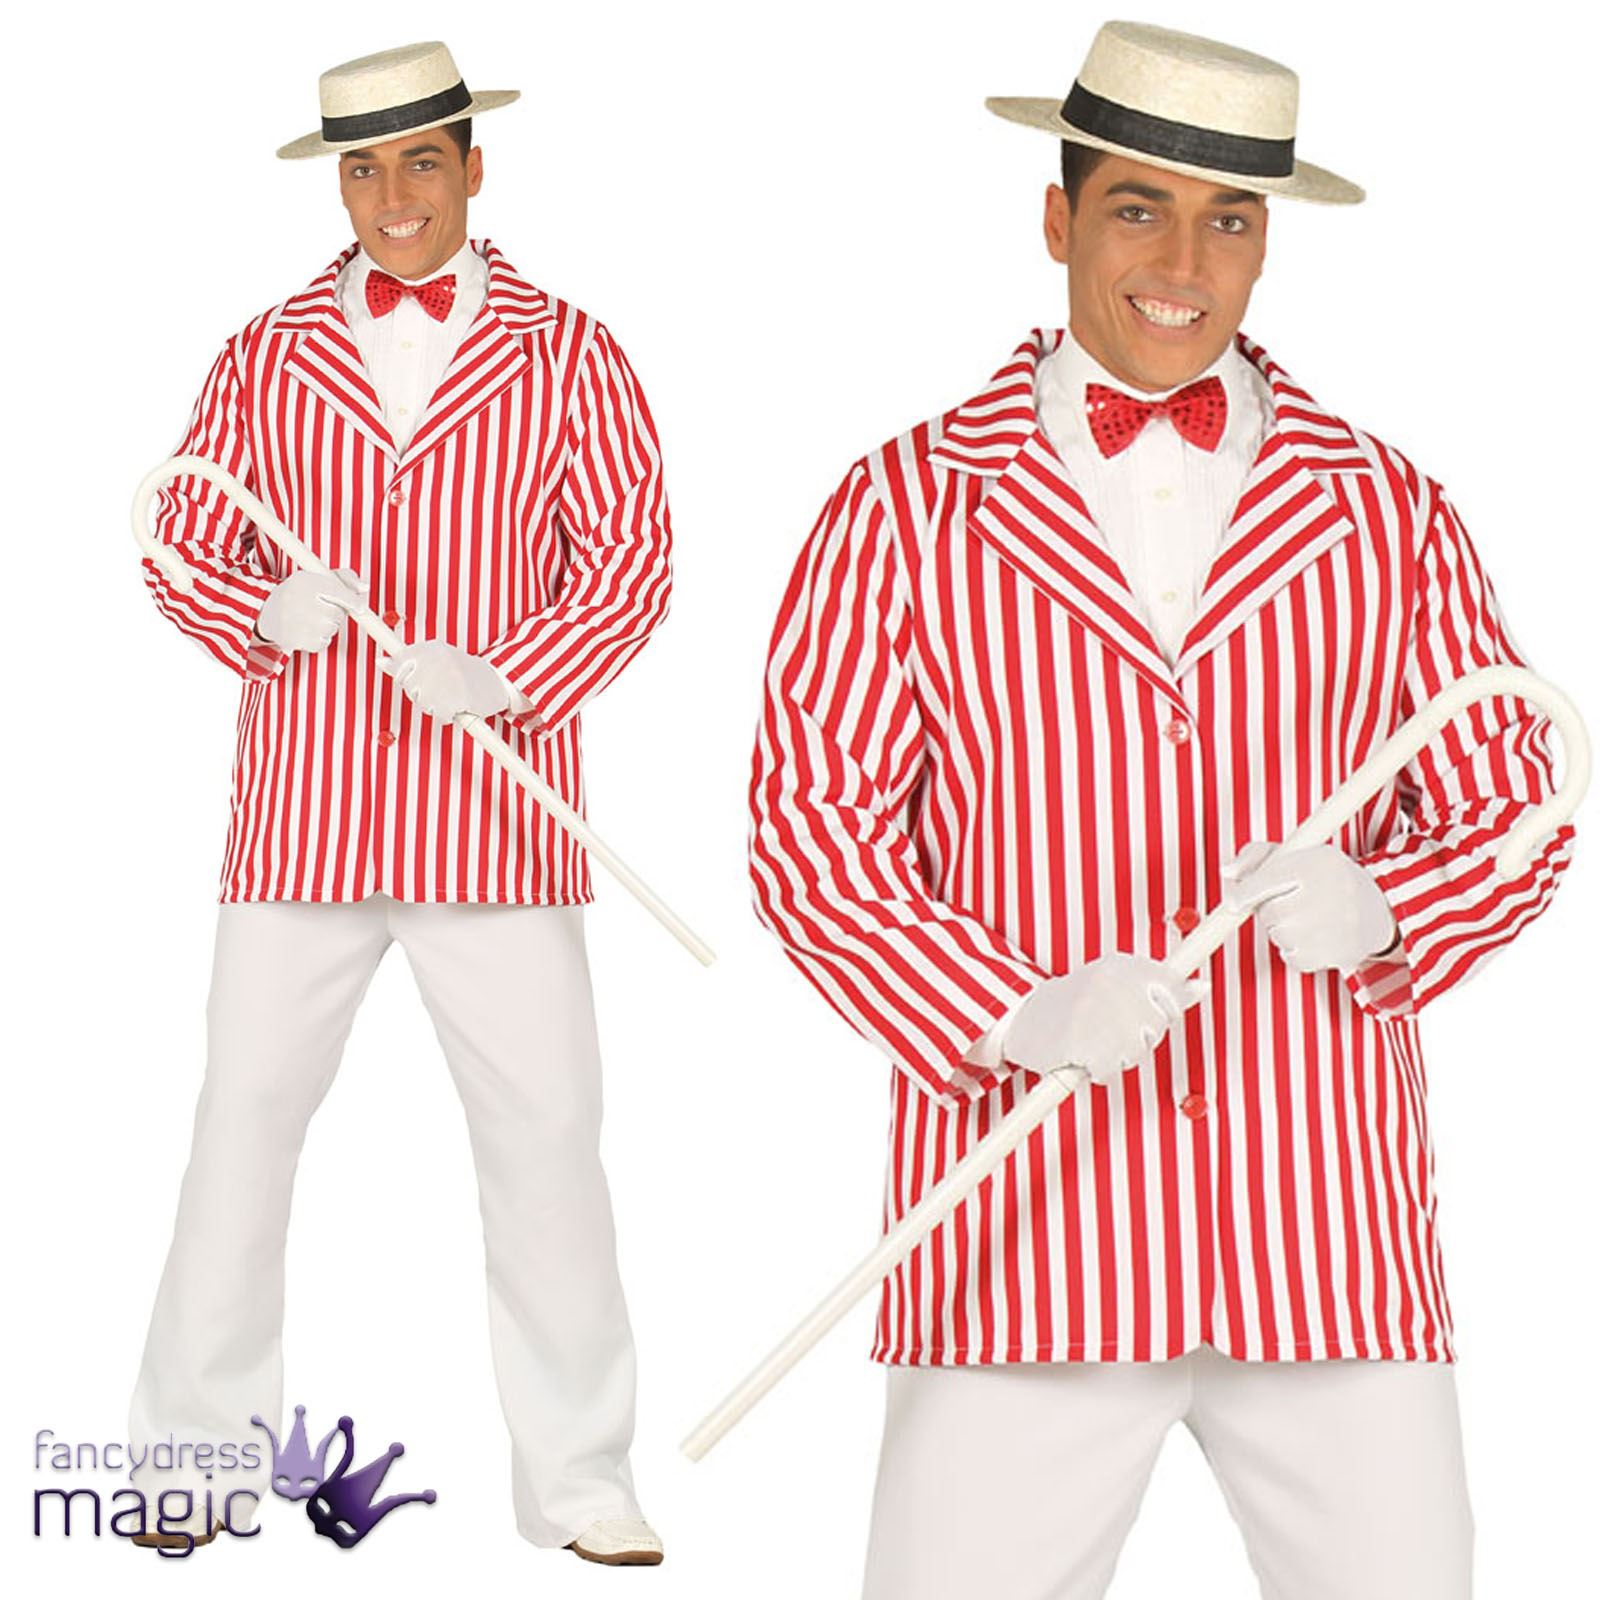 Barbershop Quartet Costume : ... Barbershop Quartet Bert Mary Poppins Fancy Dress Costume Outfit eBay